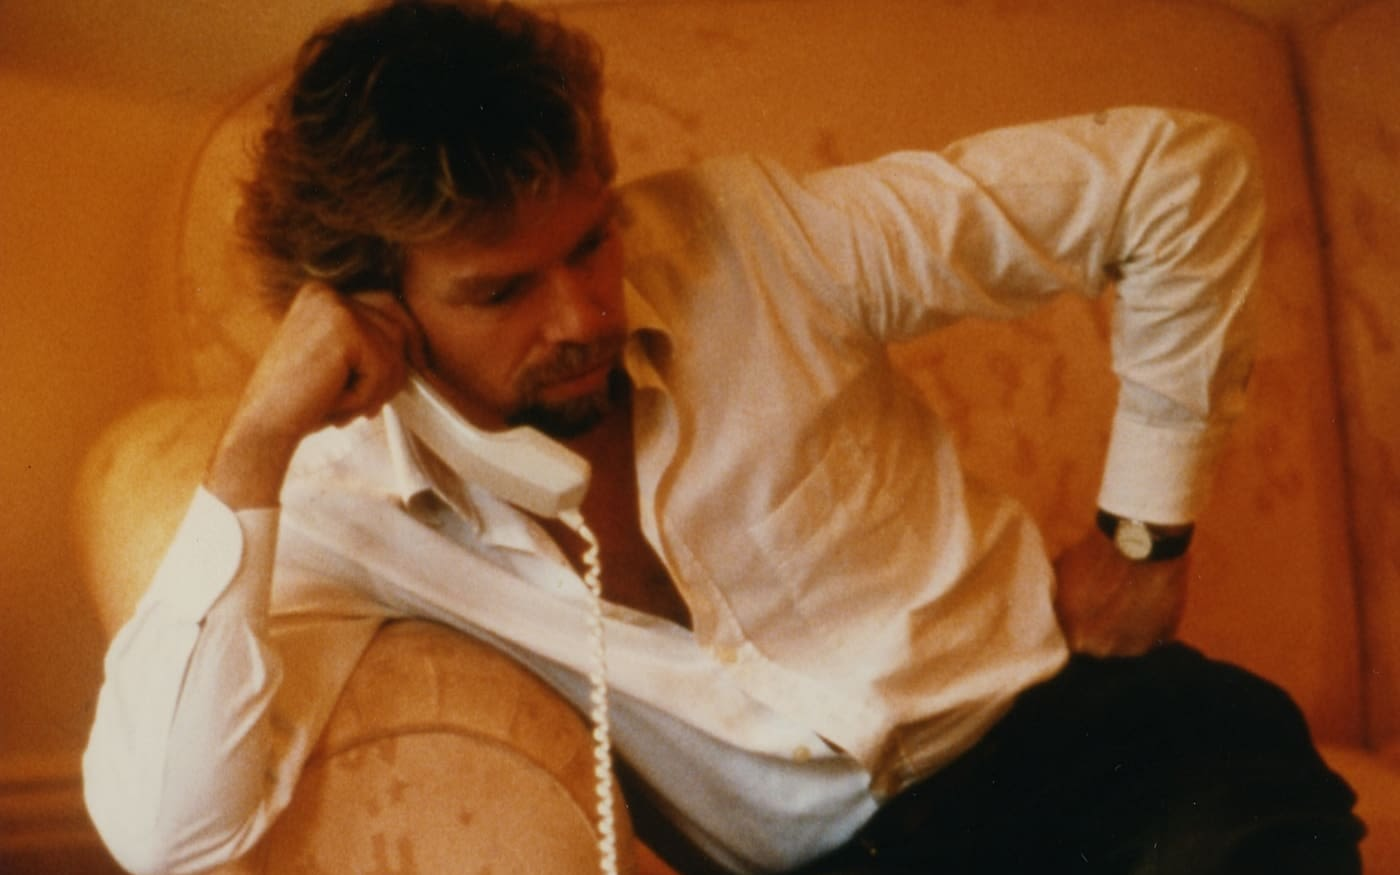 Young Richard Branson on the phone